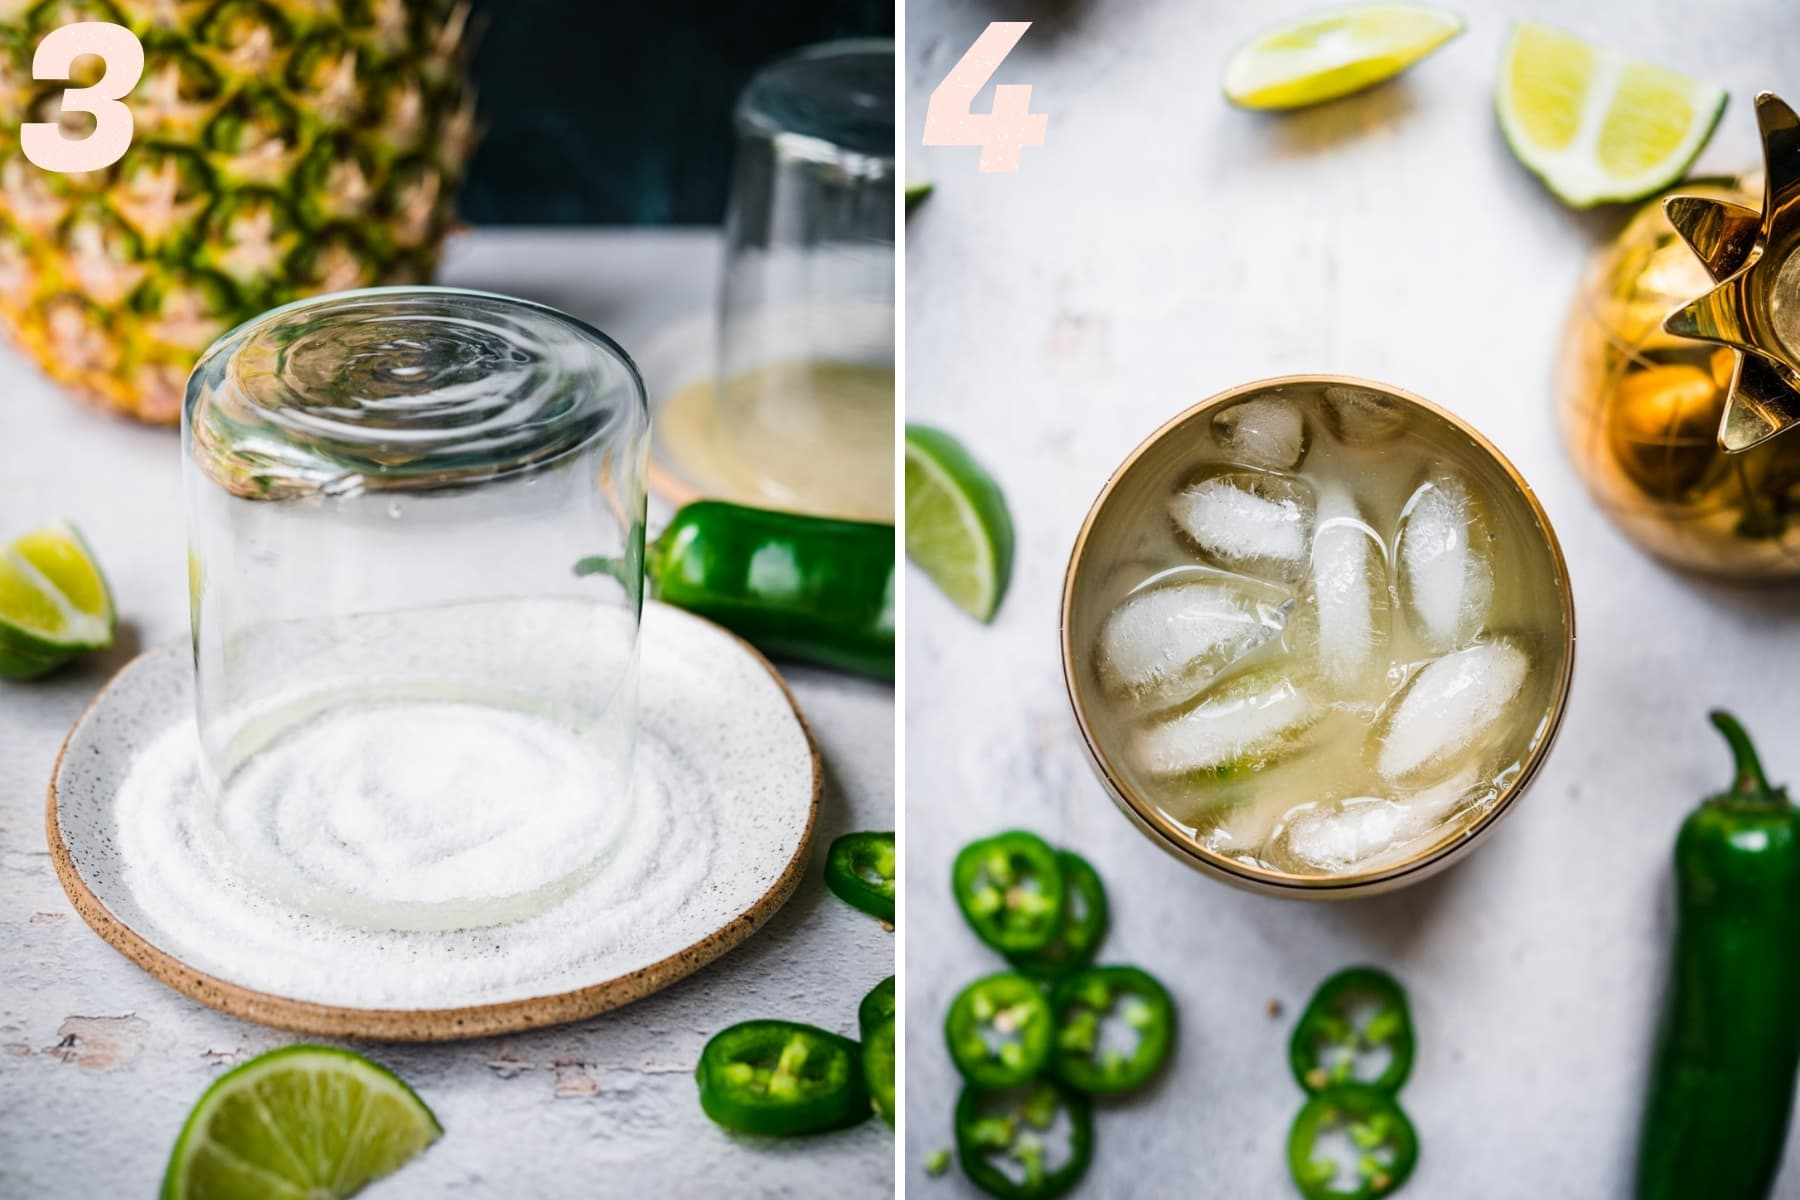 on the left: dipping cocktail glass in salt. on the right: ingredients for pineapple margarita in cocktail shaker.